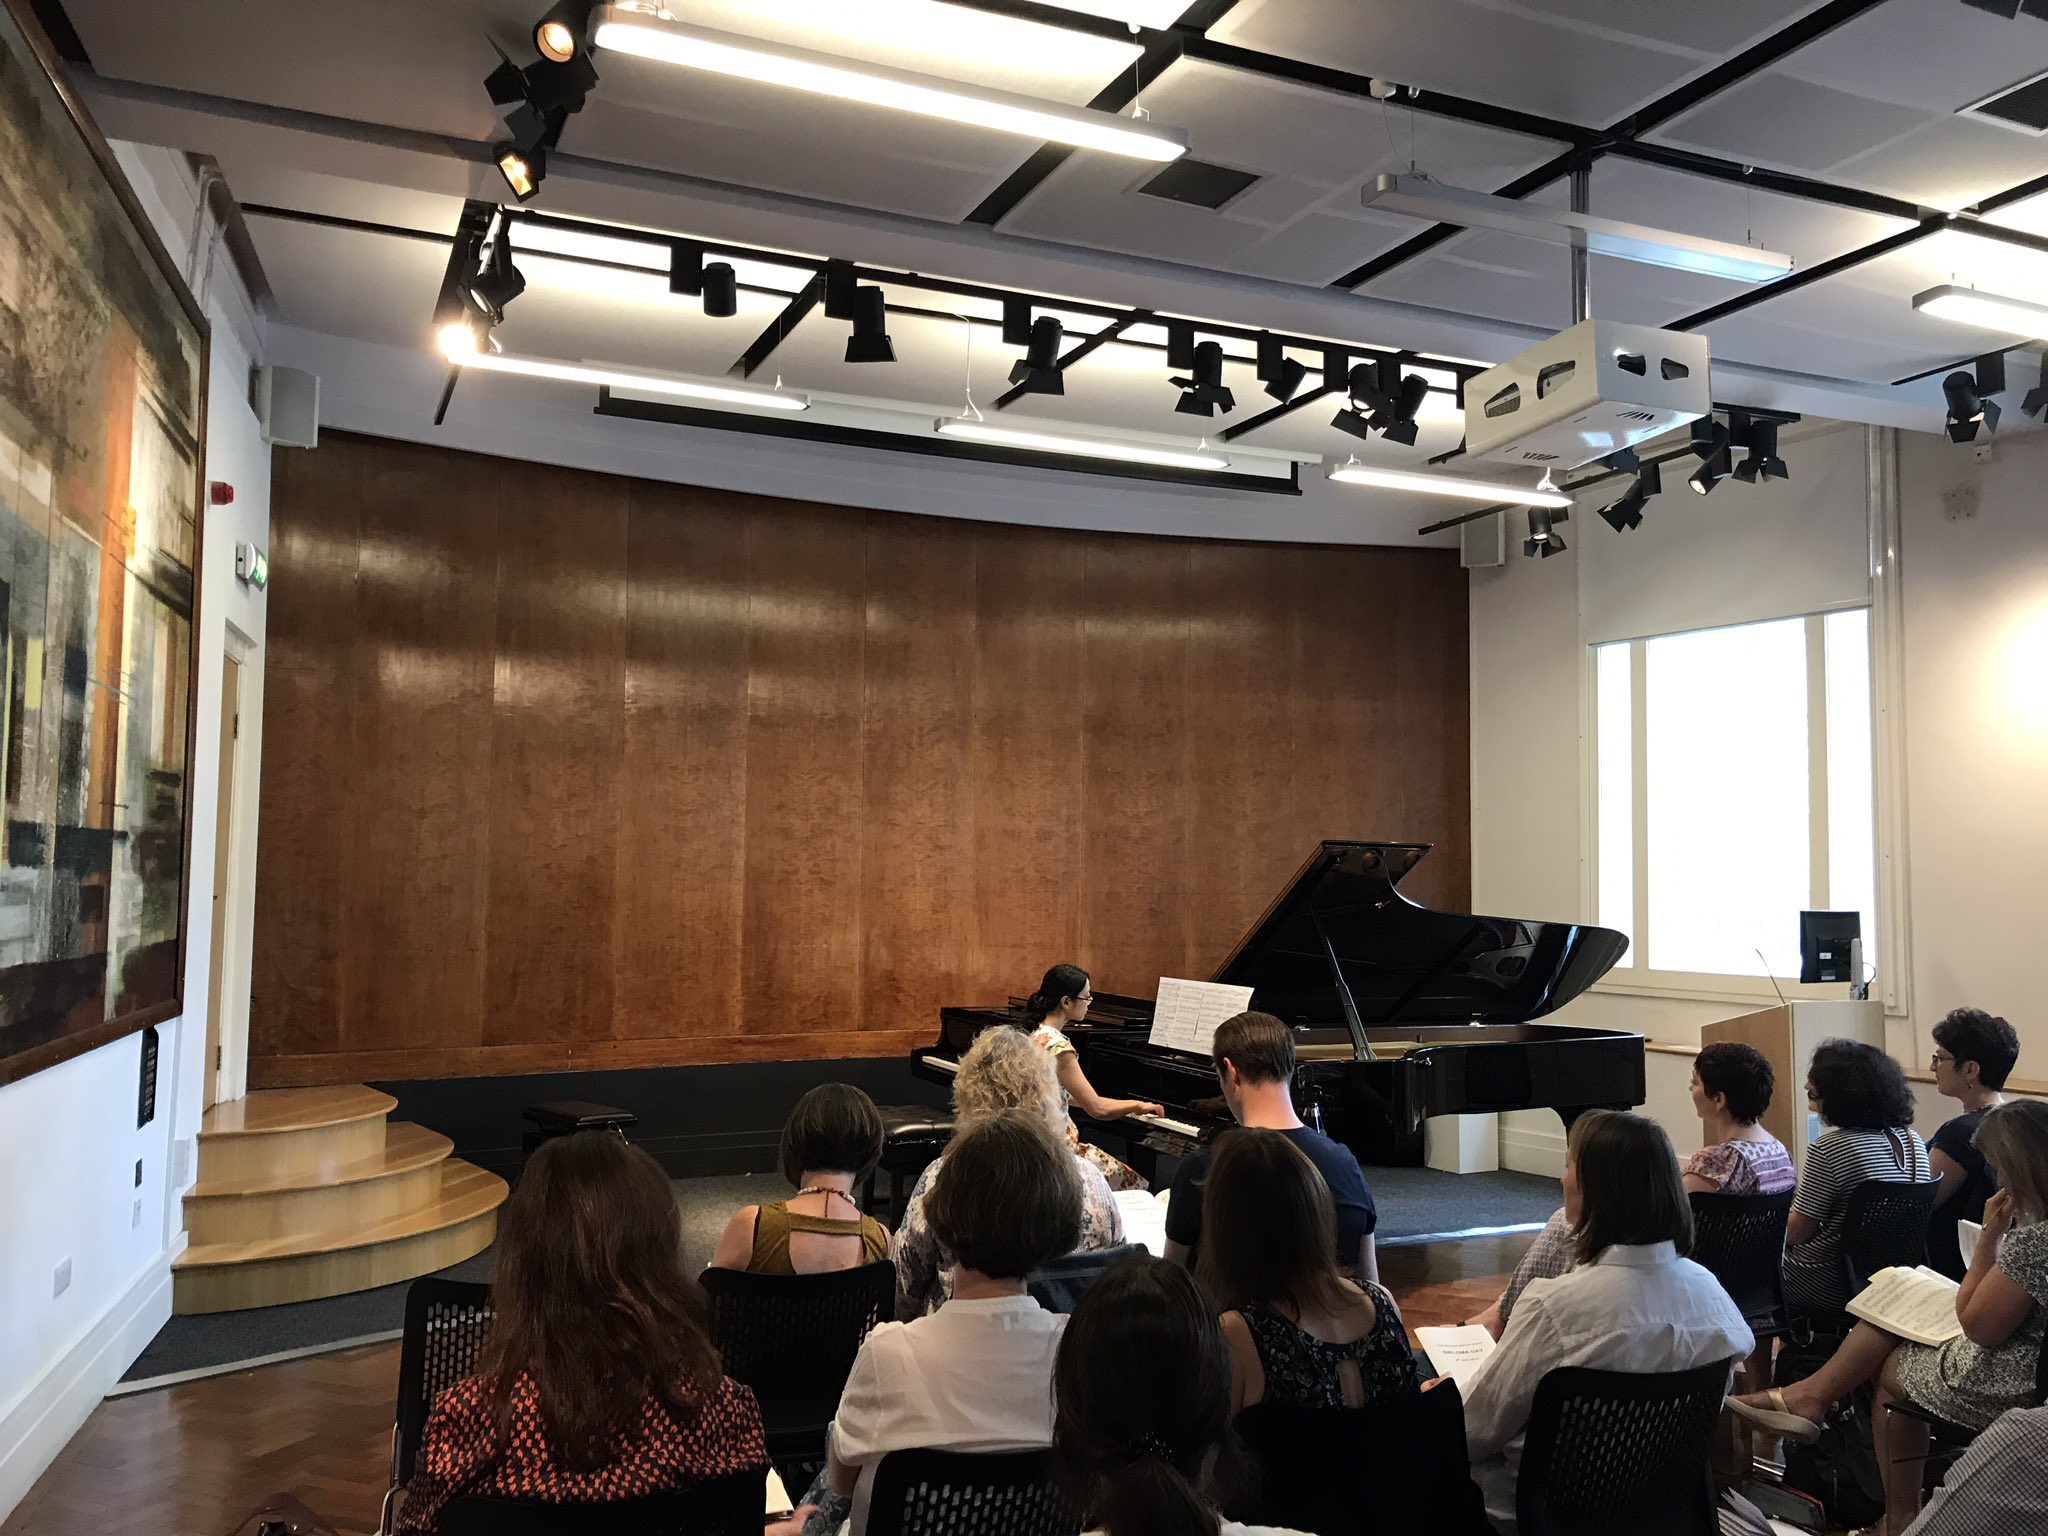 Mozart Sonata in A minor K310 to start the performances #DipDay https://t.co/A4z3zd0PWp